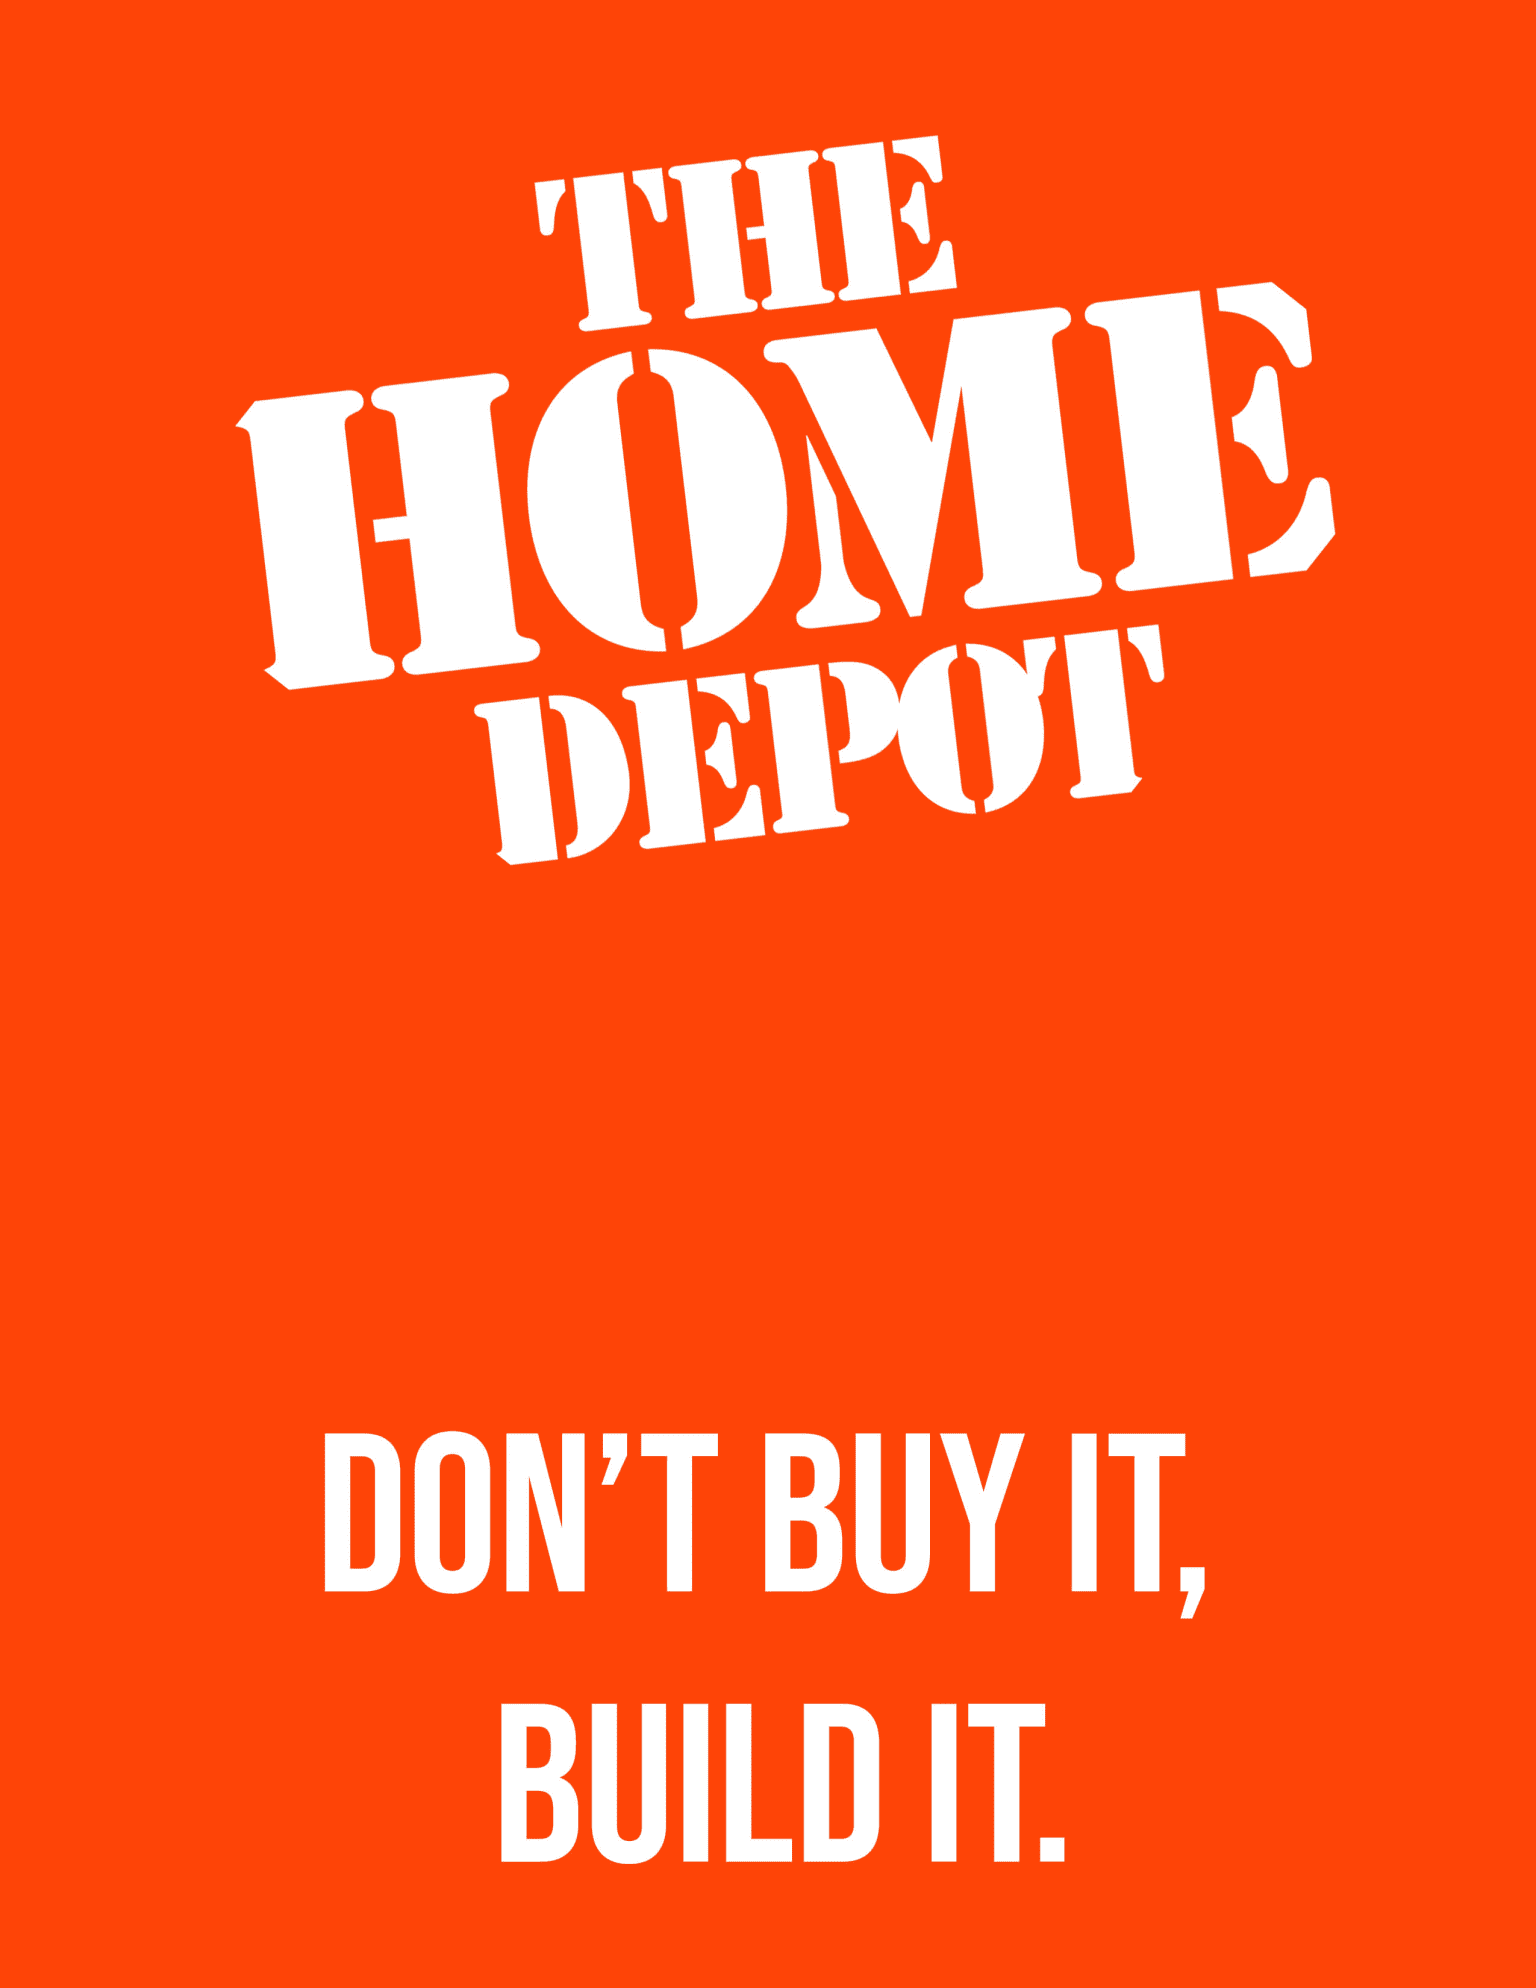 The Home Depot - Don't Buy It, Build It.